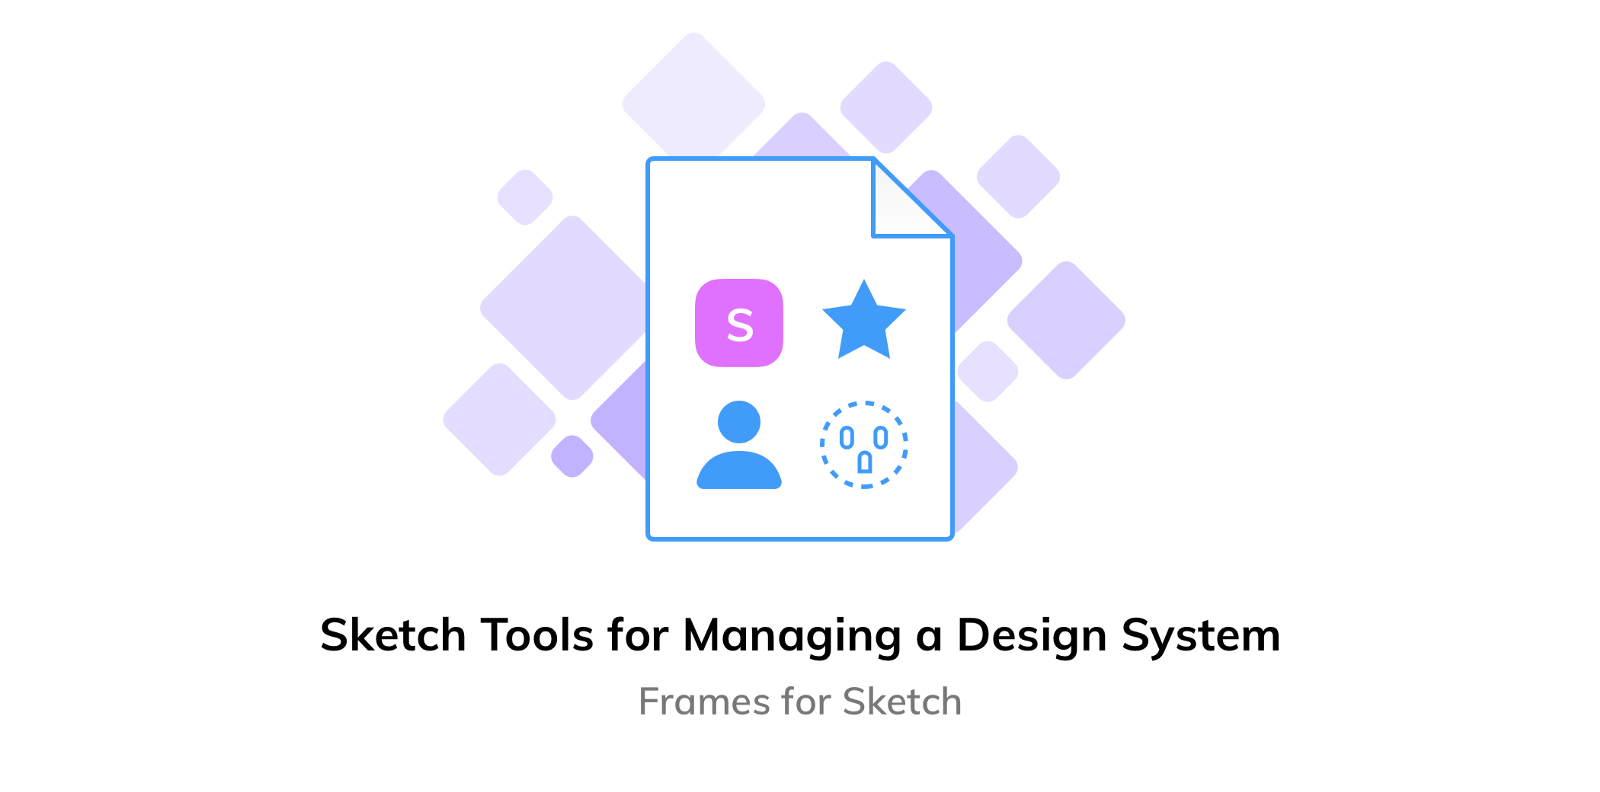 Sketch tools for managing a design system design sketch medium listed plugins are compatible and were used during the process of making the frames design system possible and other robowolf products as well buycottarizona